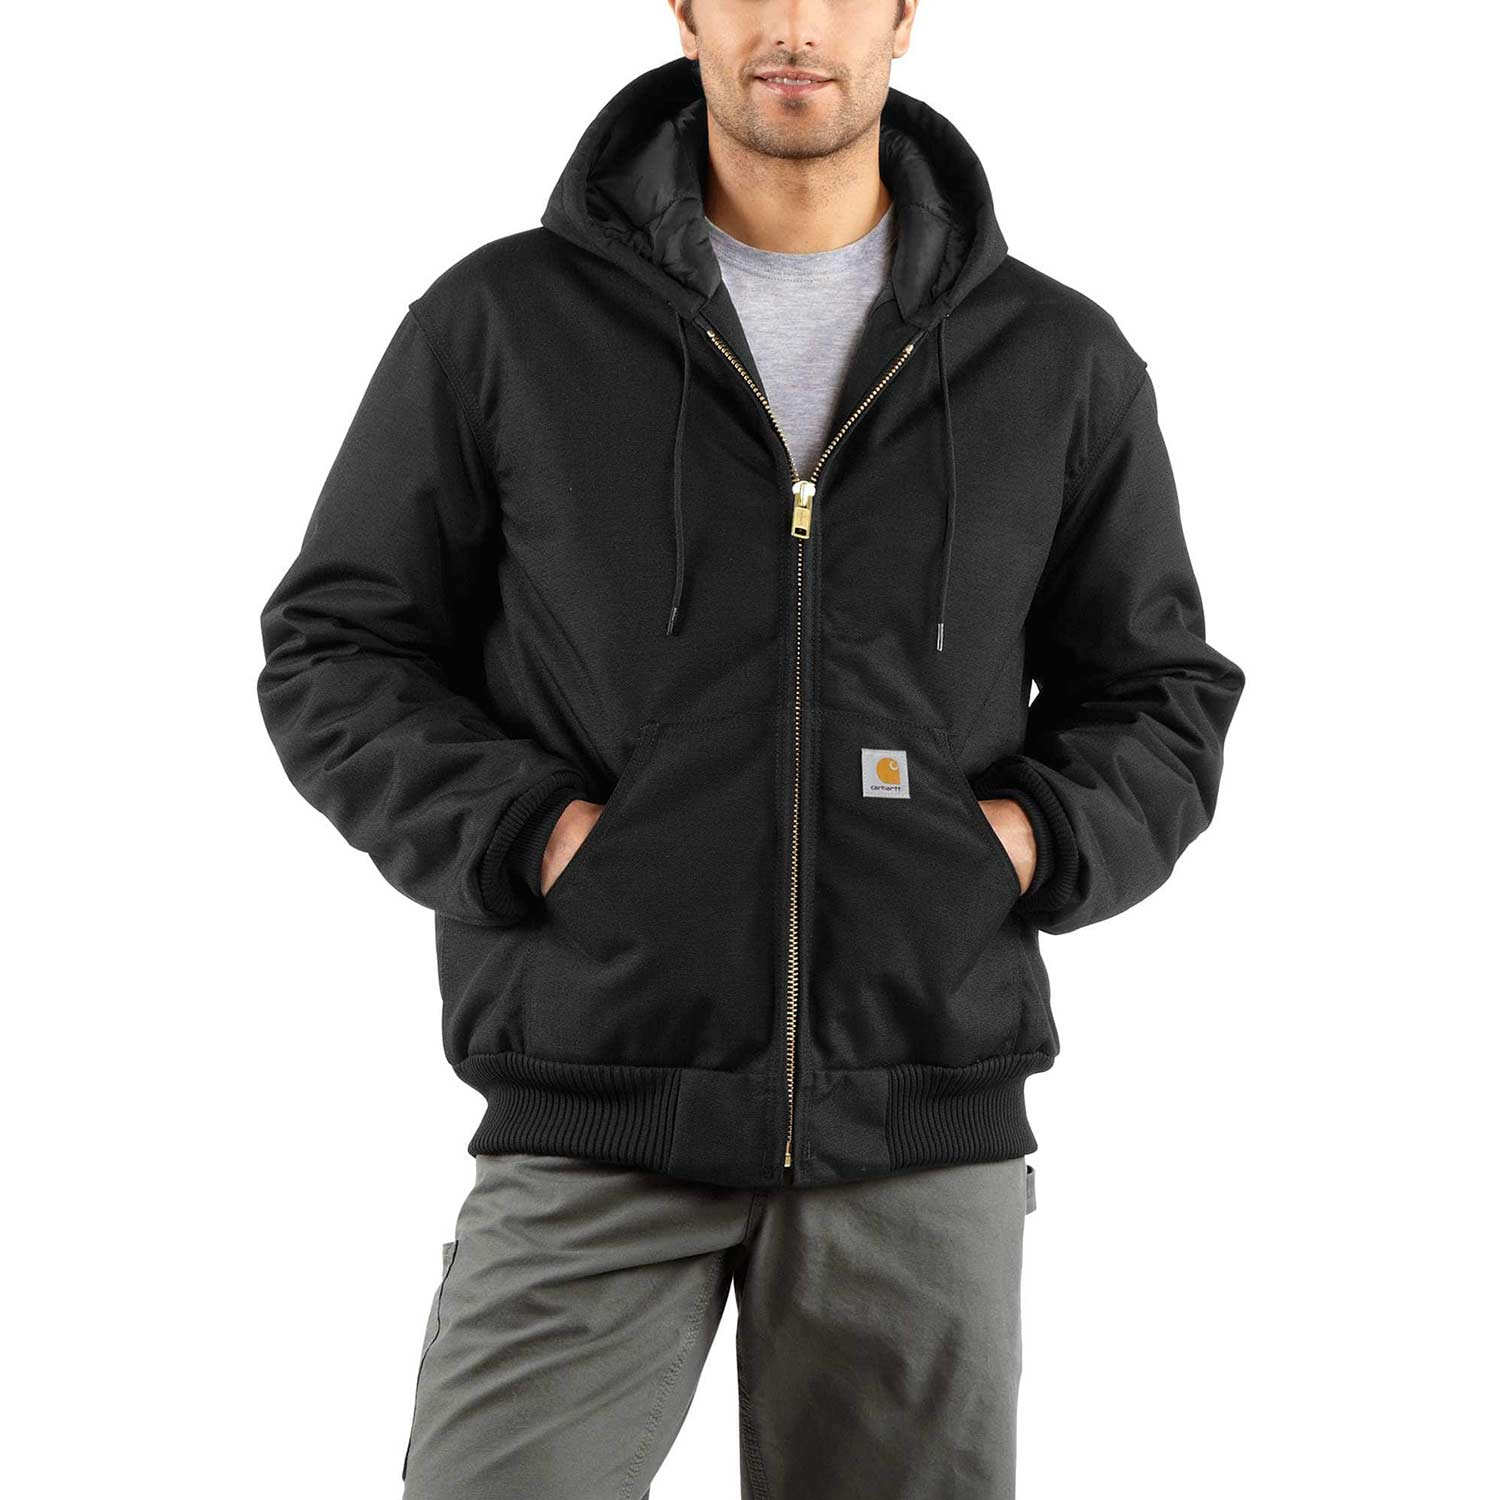 Carhartt Yukon Extremes Artic Quilt Jacket